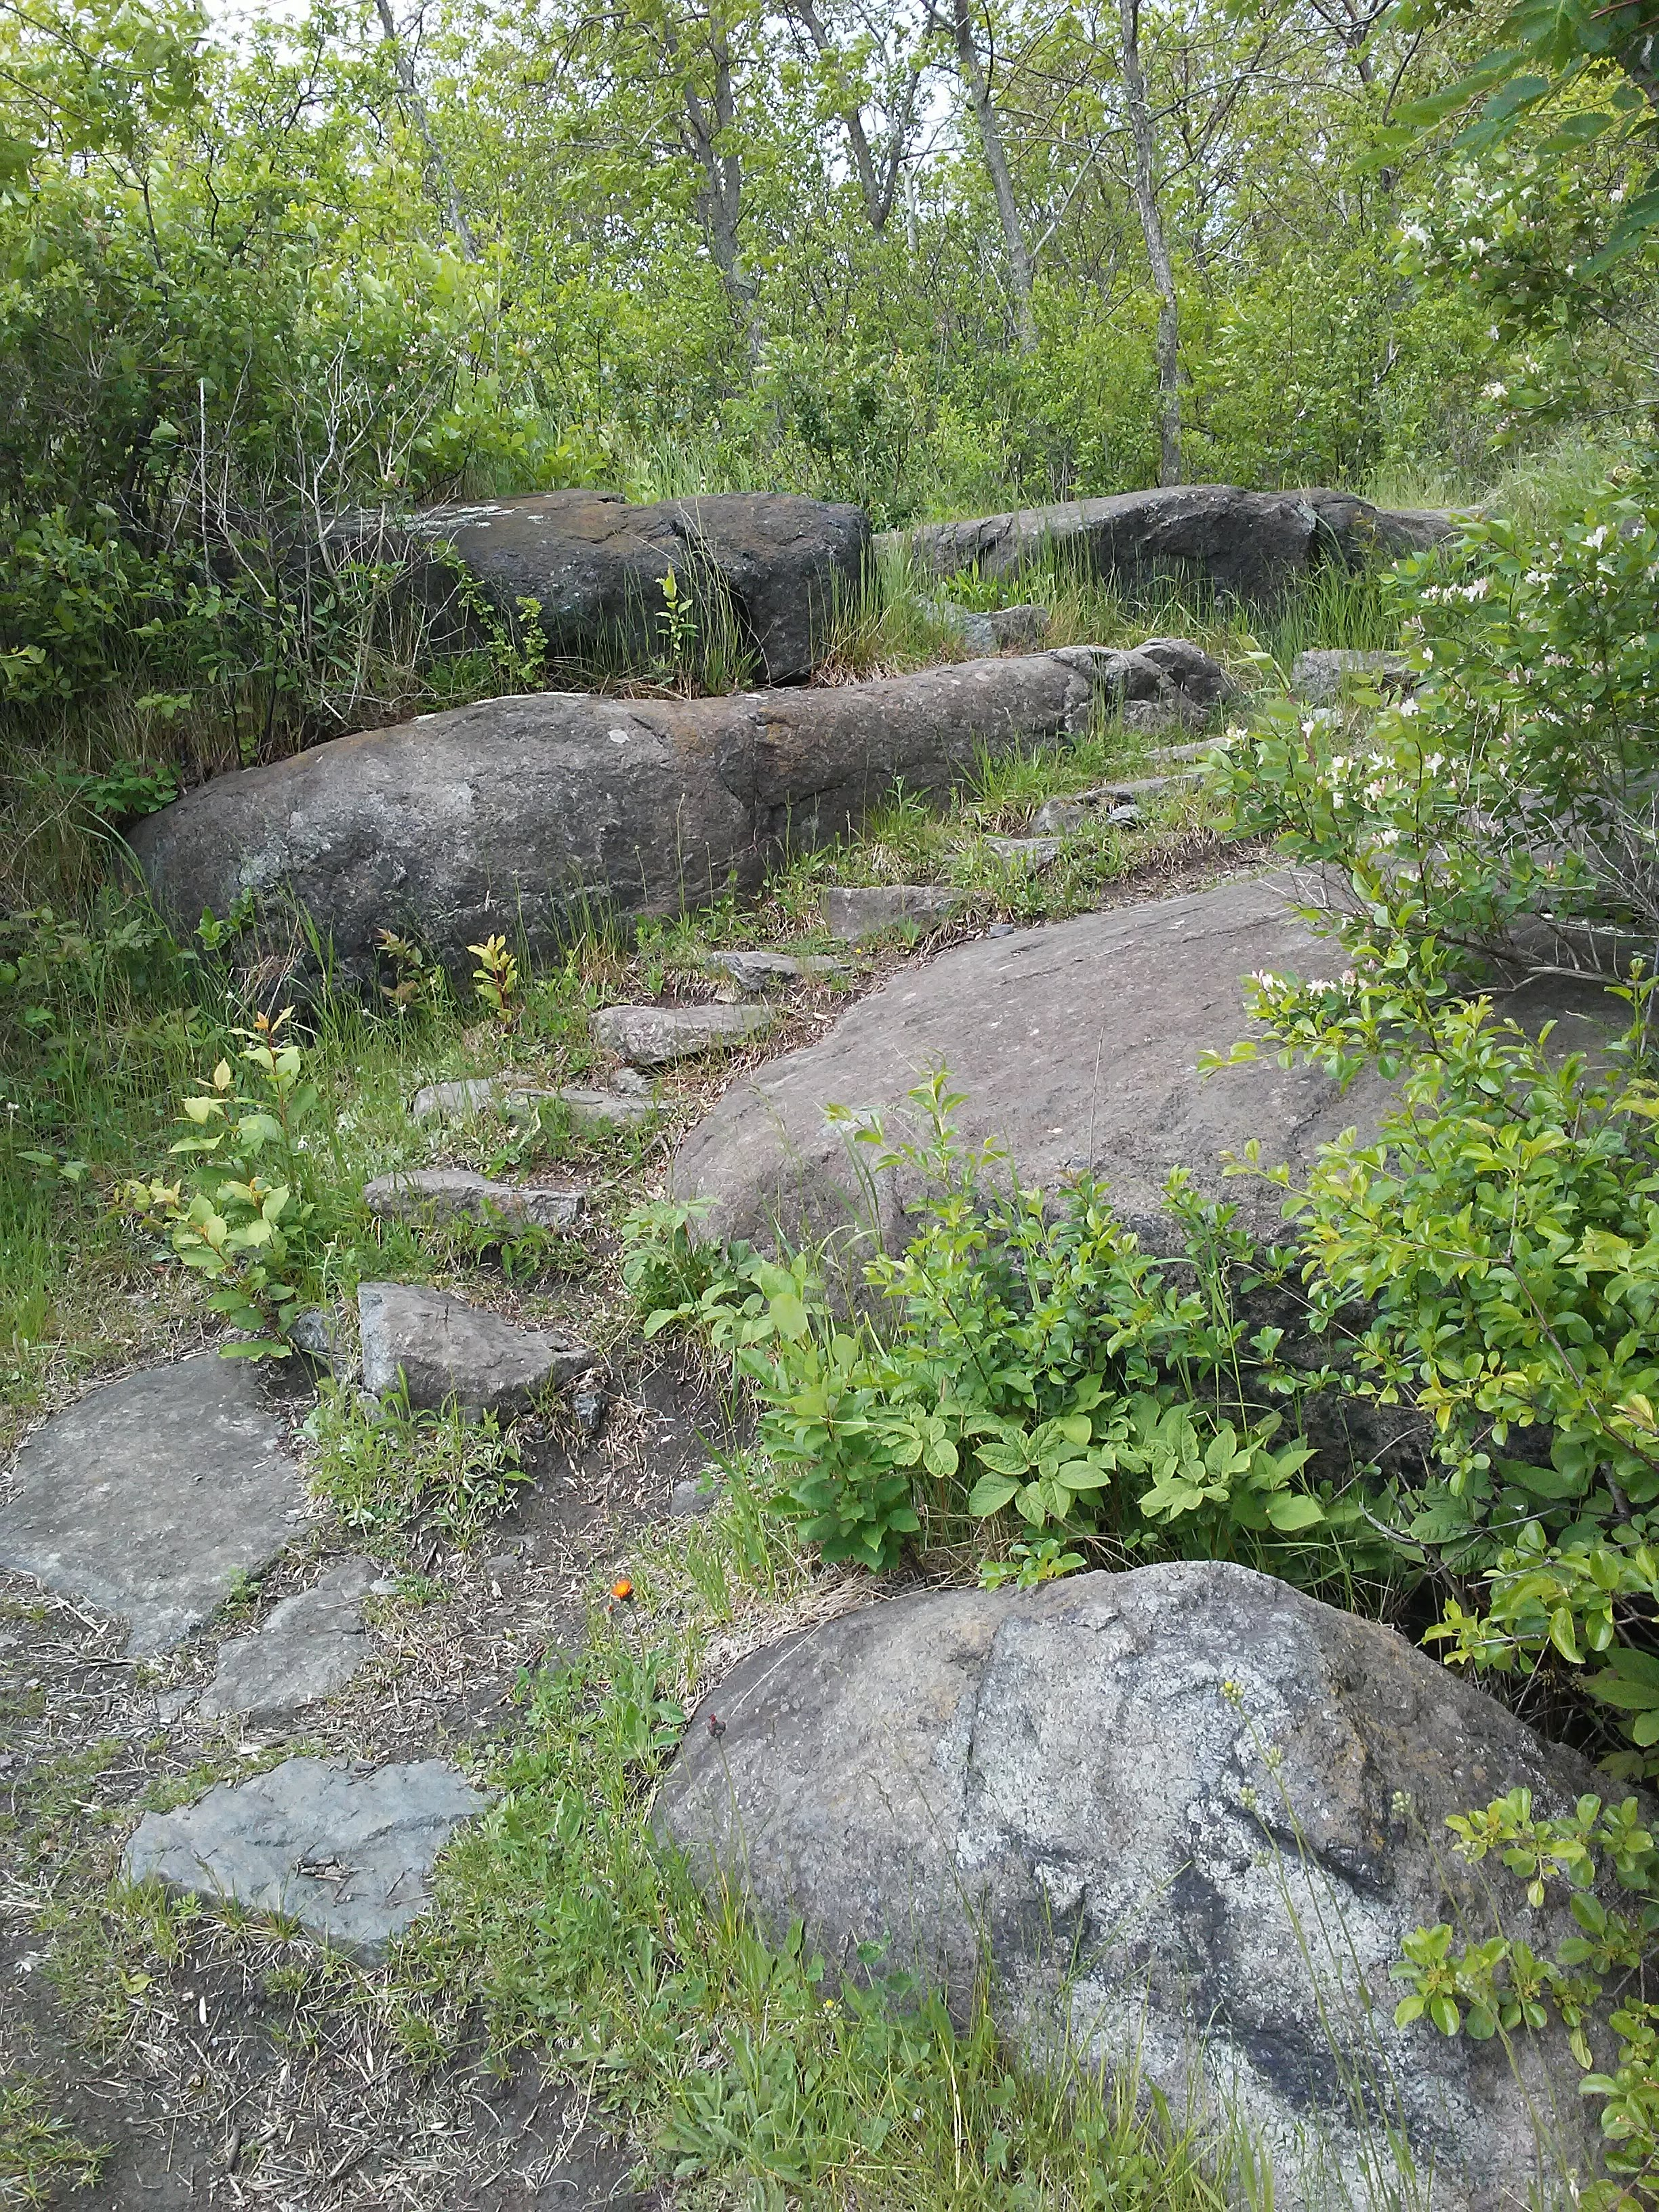 trail of rock steps overgrown with plants and surrounded by large boulders